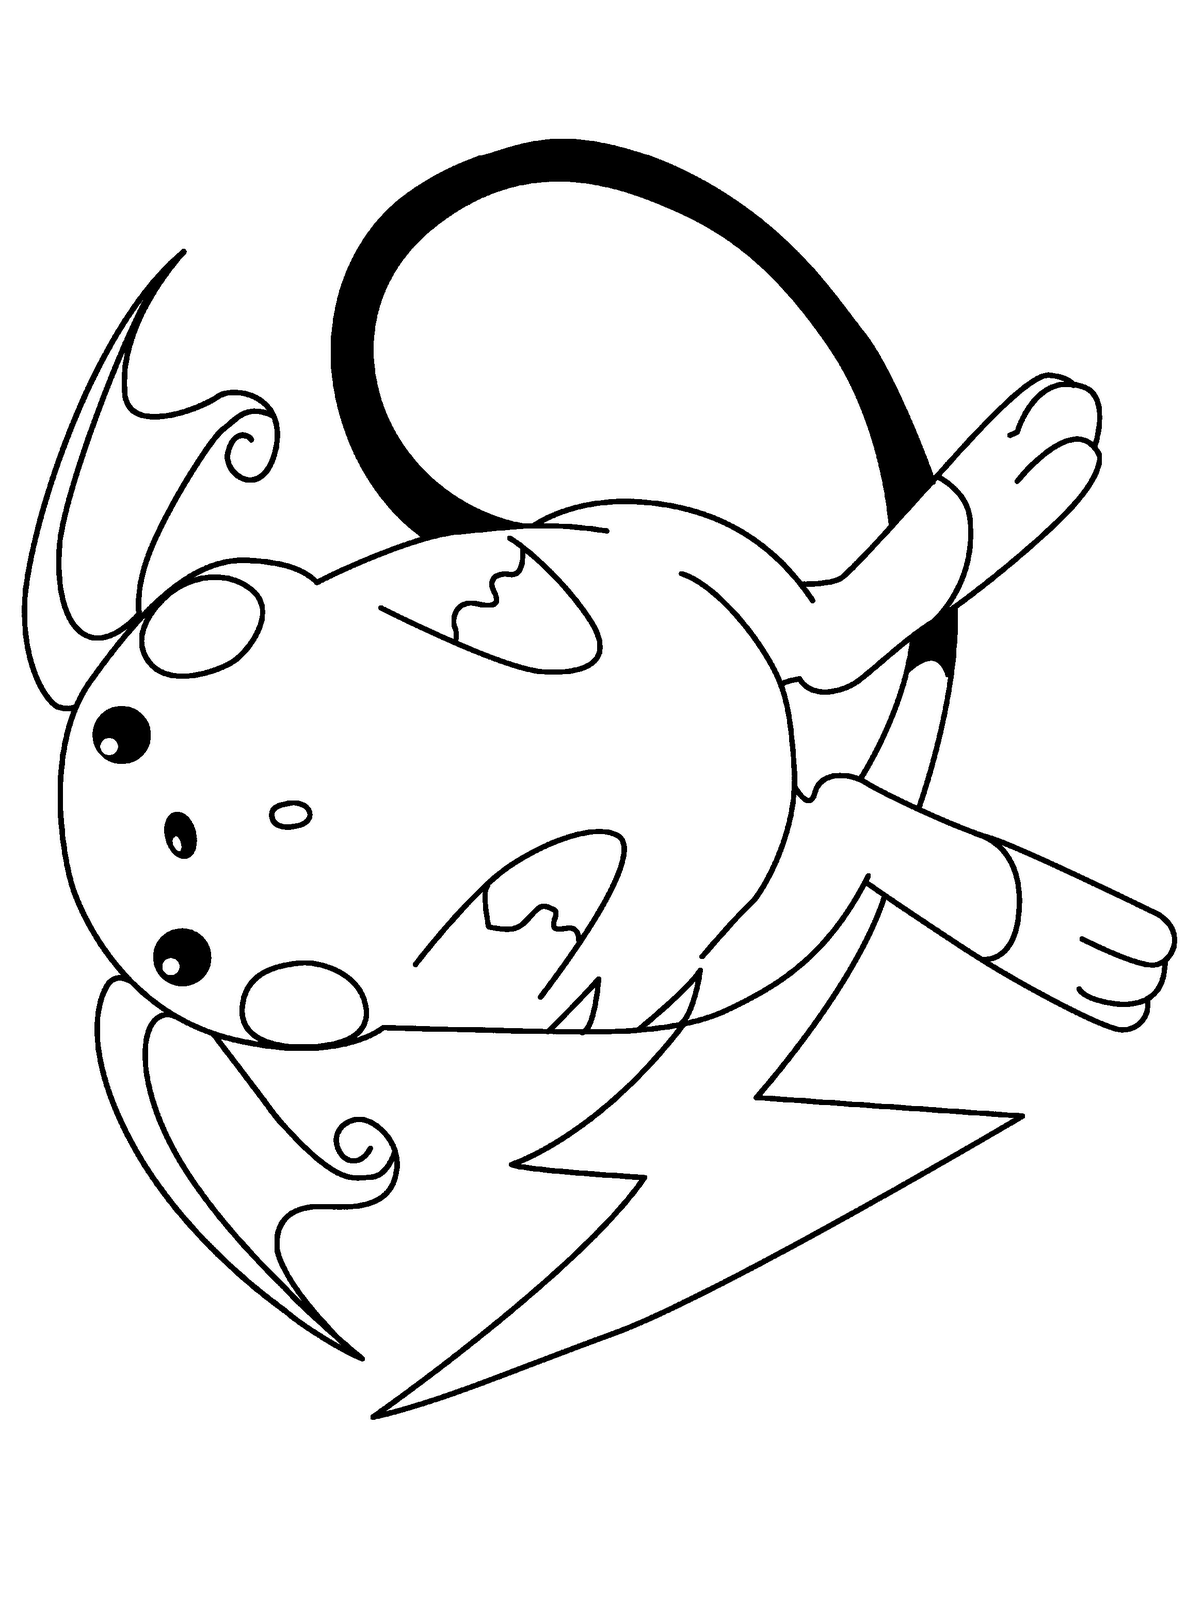 pokemon butter free coloring pages - photo#18